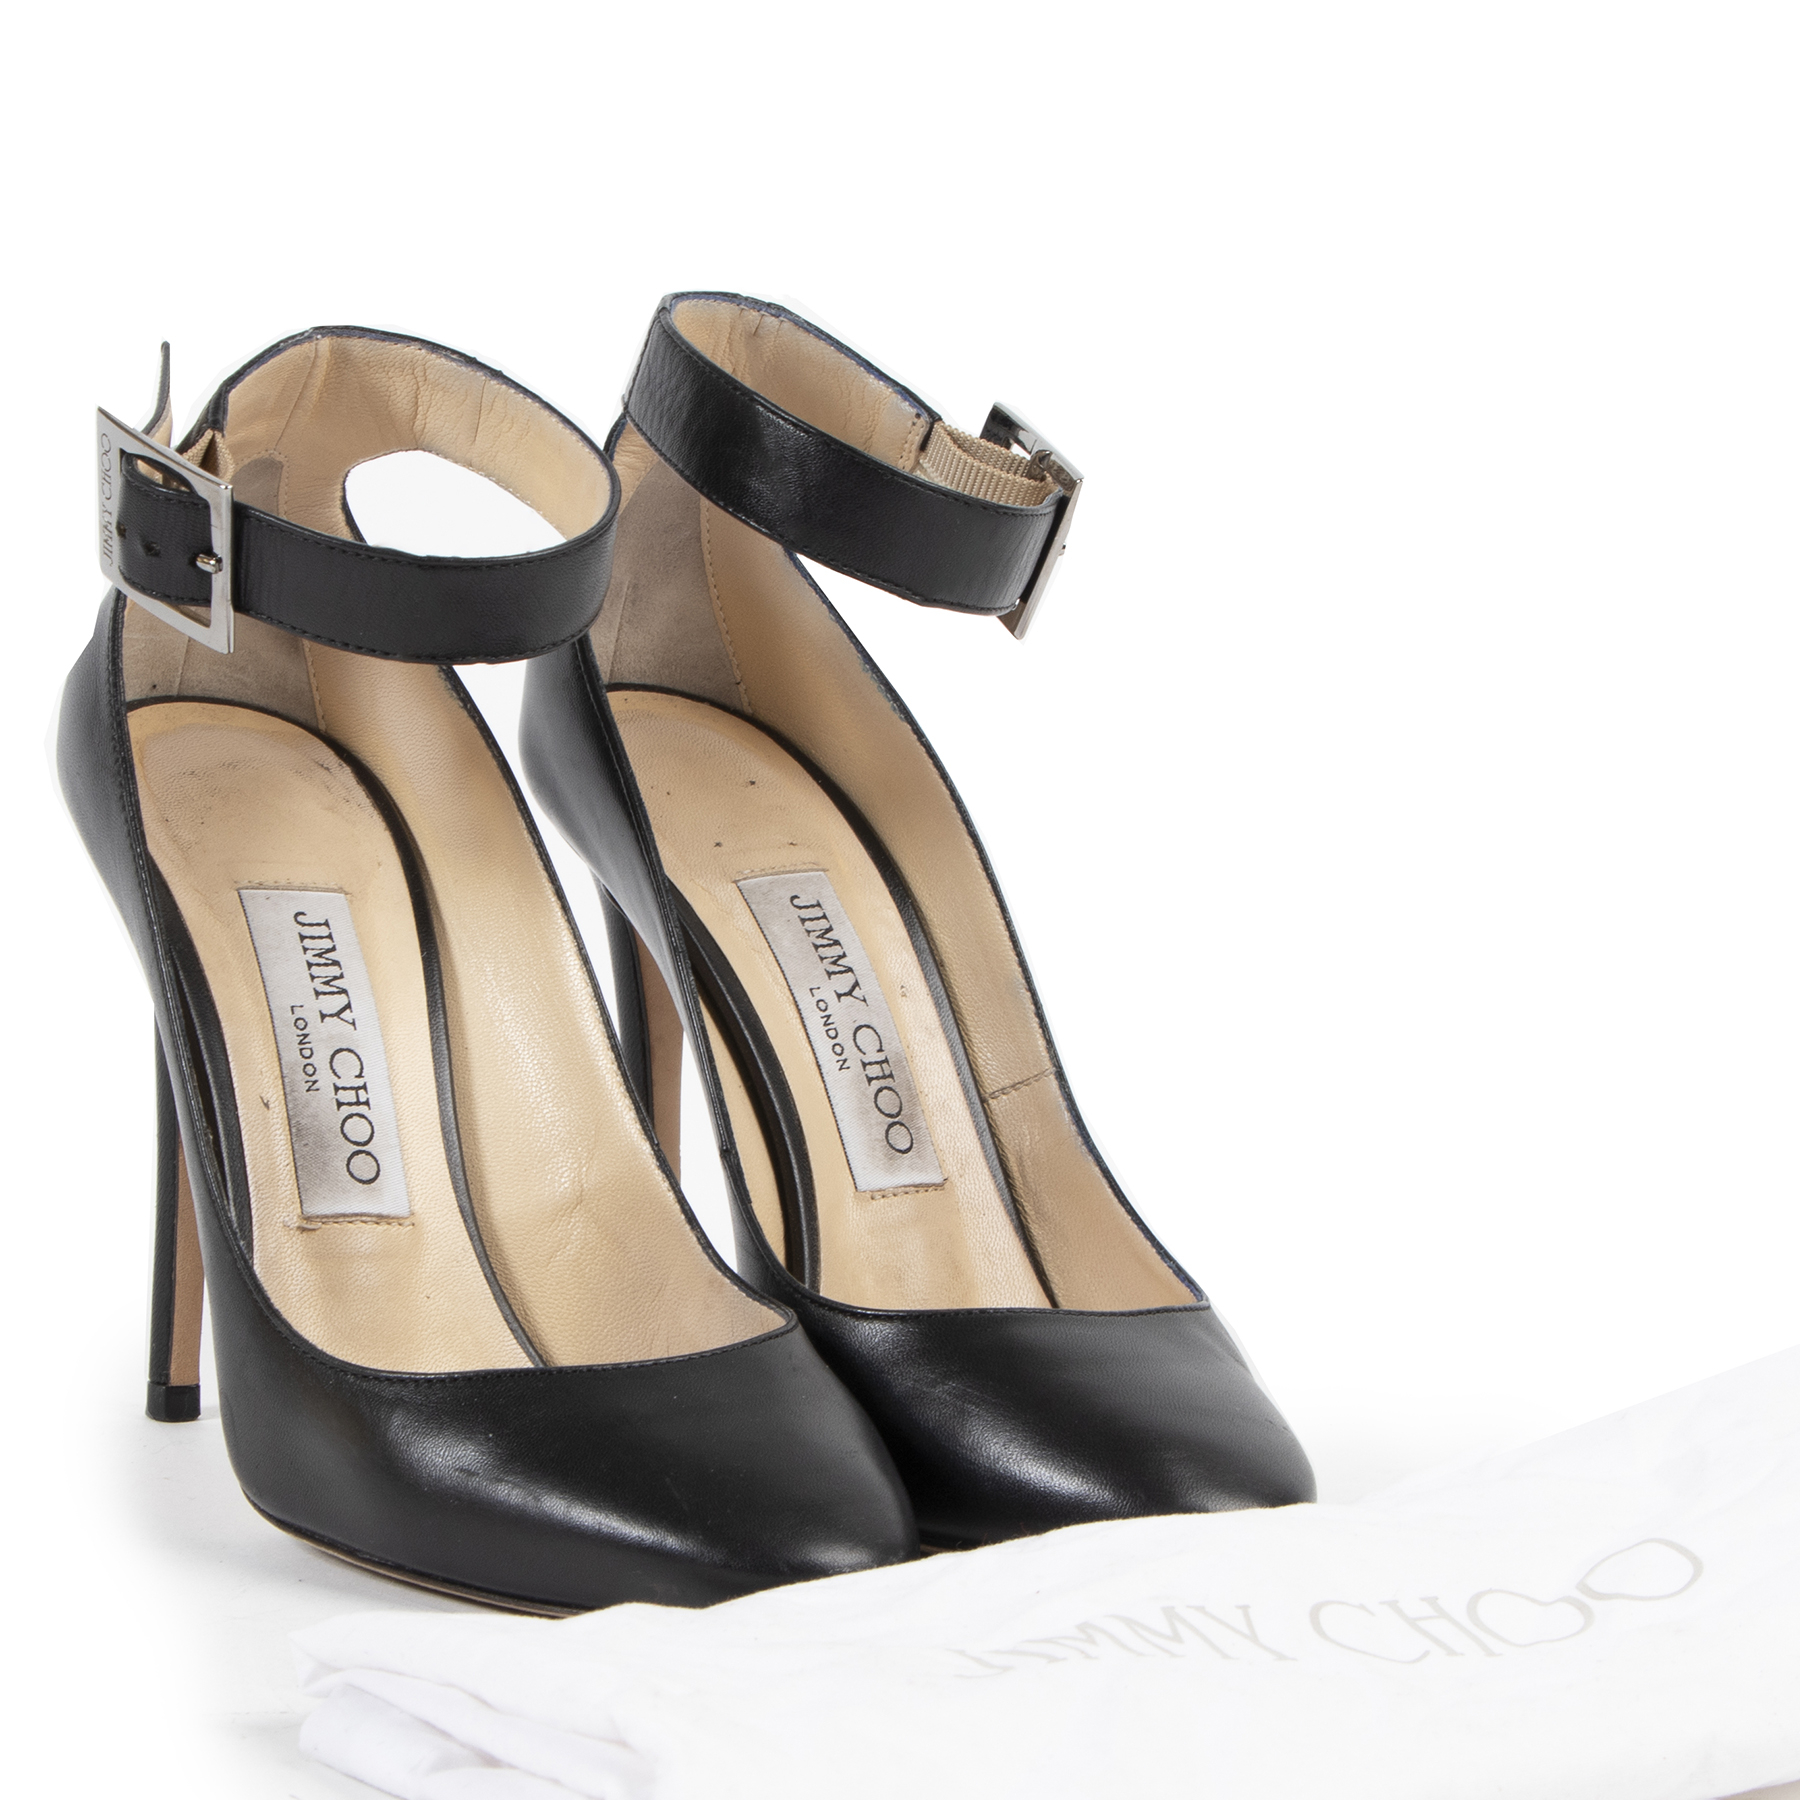 We buy and sell your authentic designer Jimmy Choo Helena 110 Leather Pumps